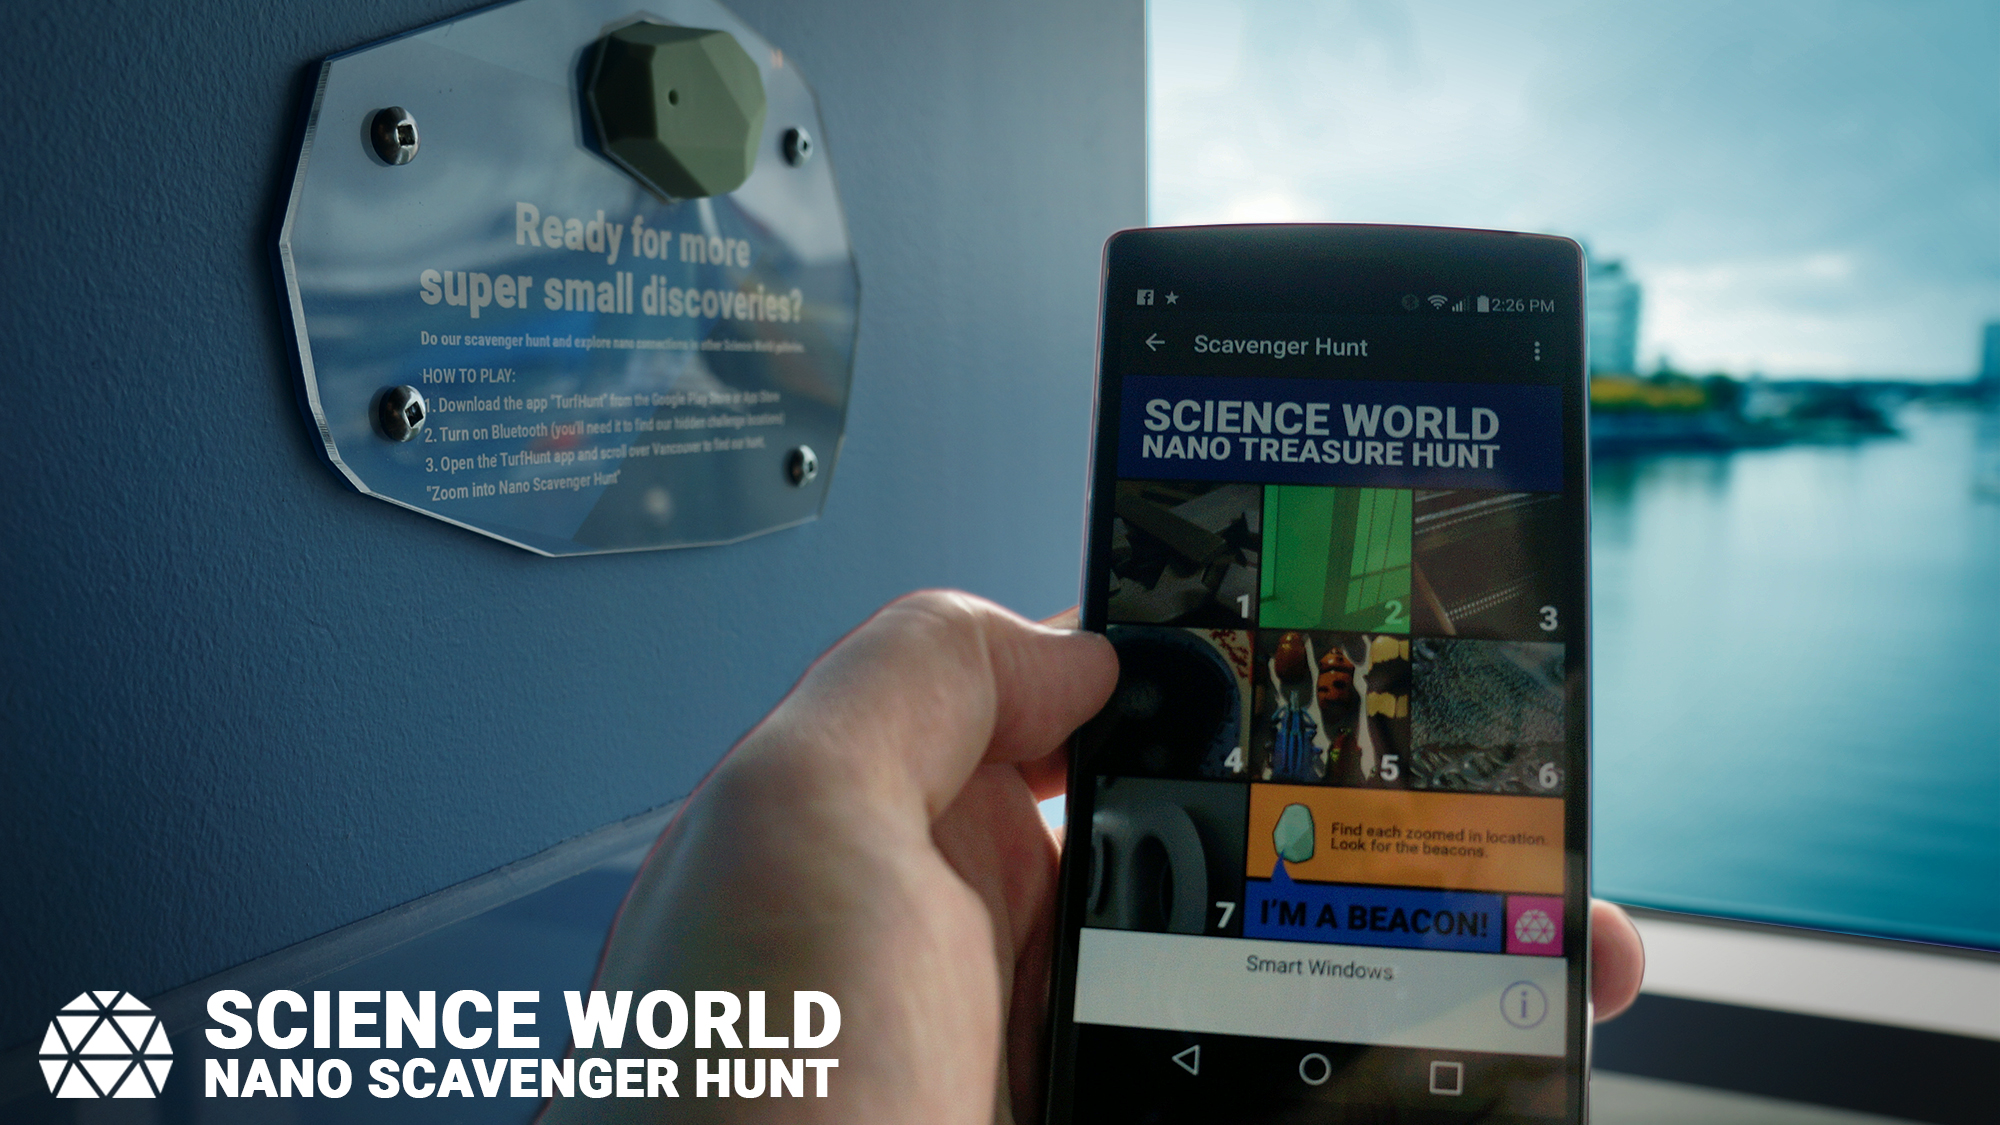 Science World - Zoom Into Nano Treasure Hunt Game & Estimote BLE Beacon